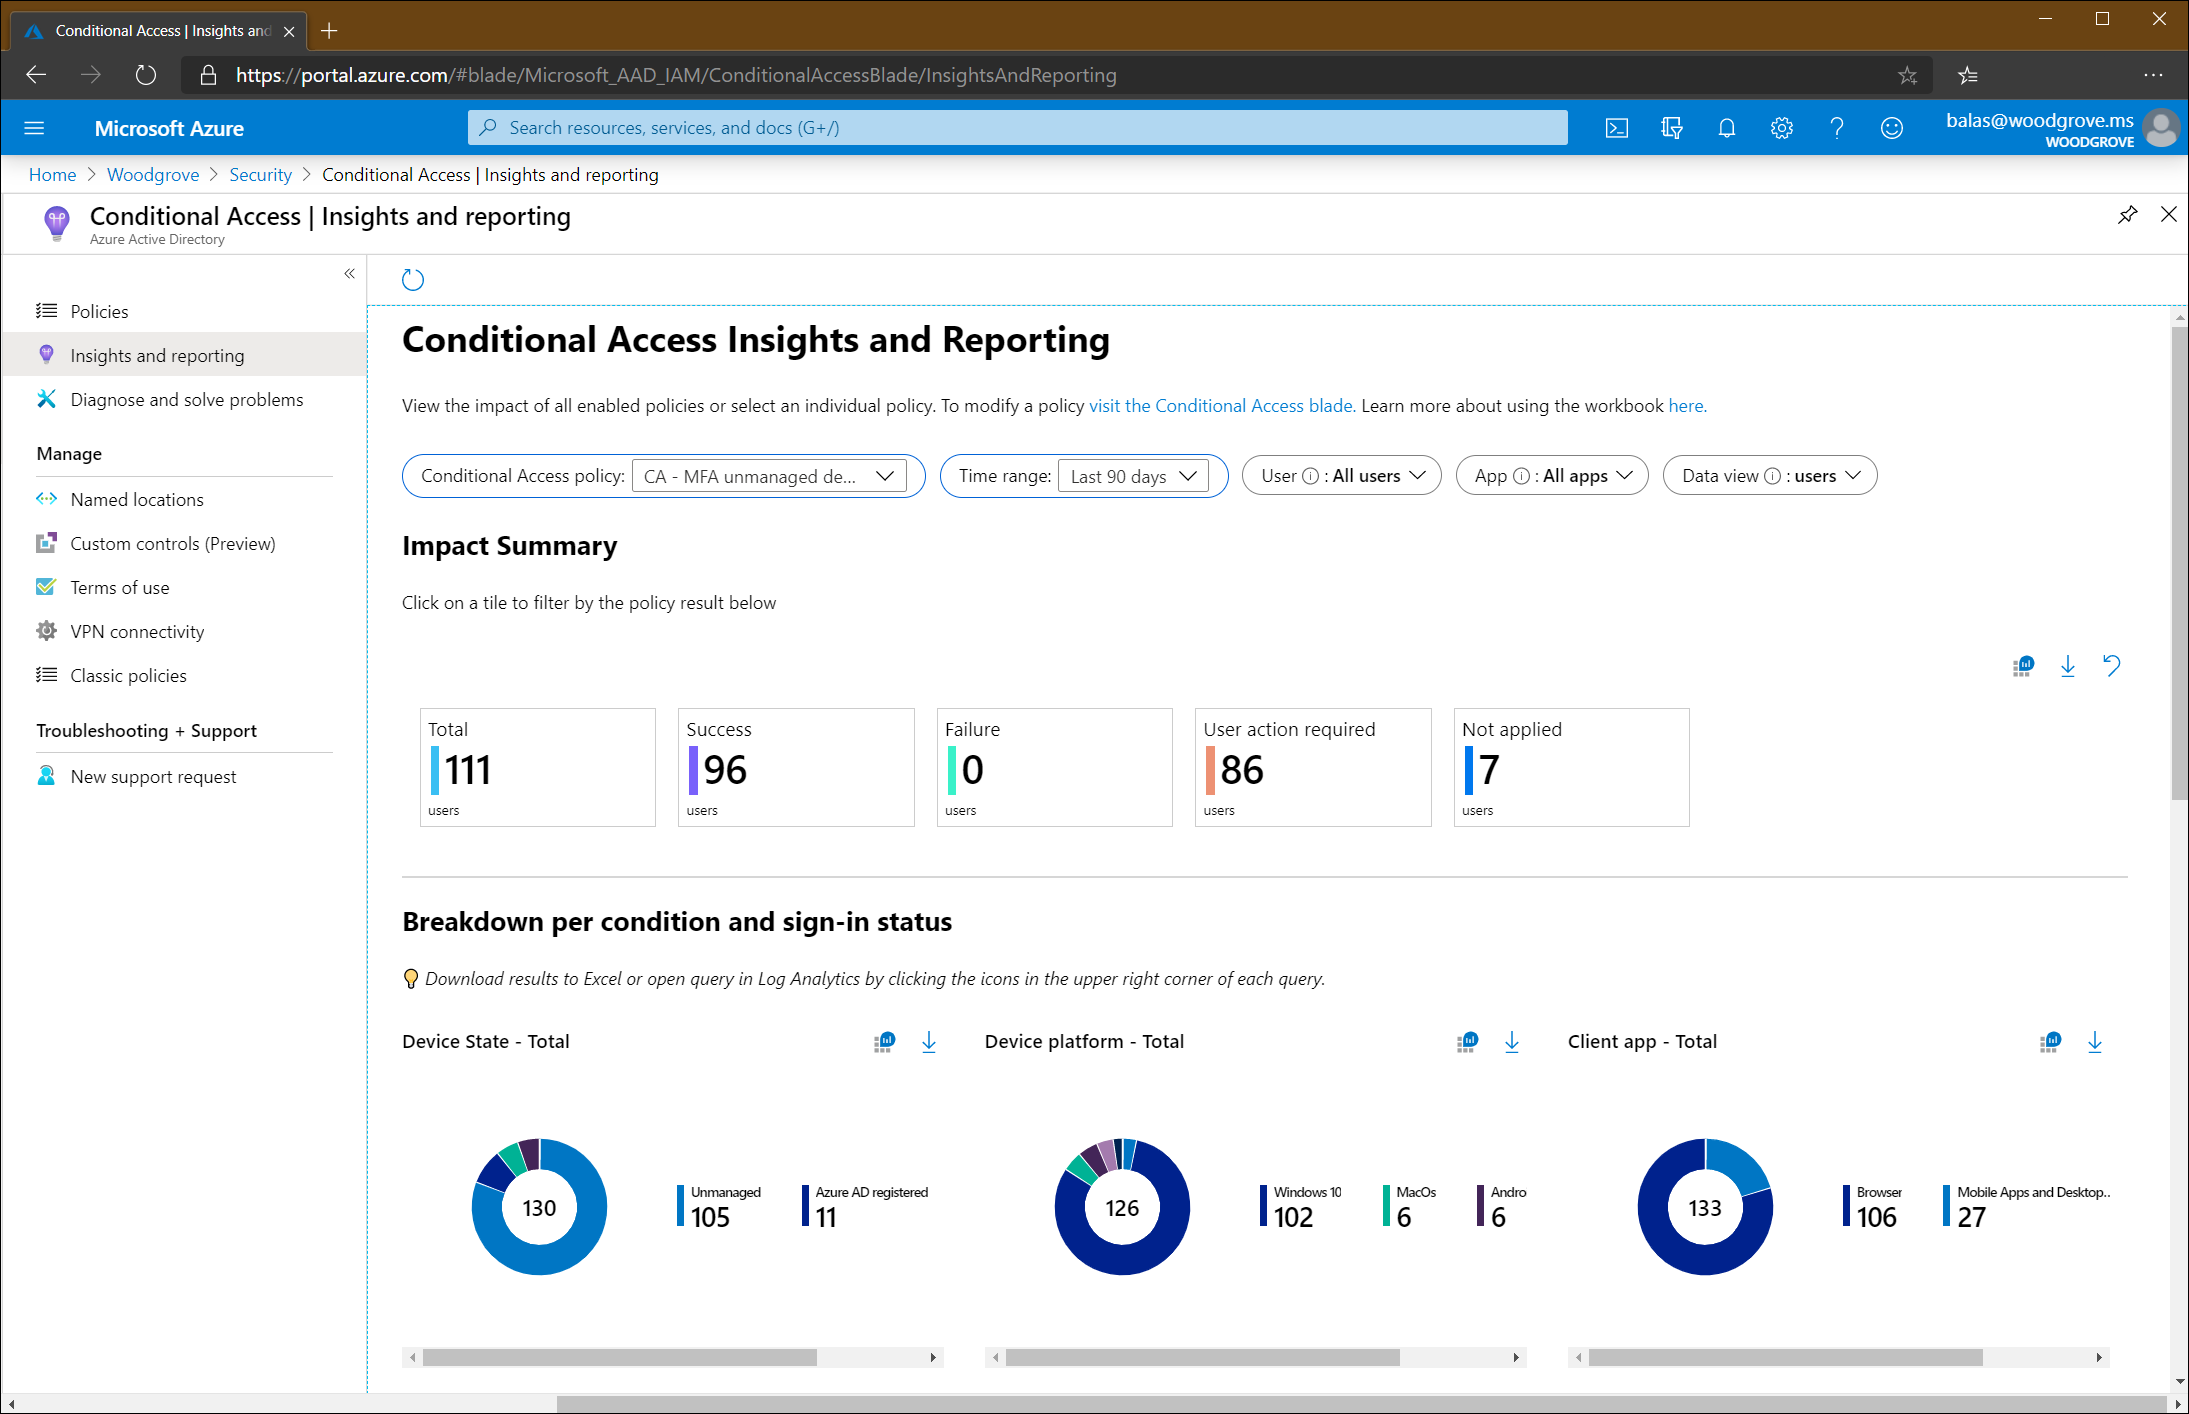 Conditional Access Insights and Reporting dashboard in the Azure portal